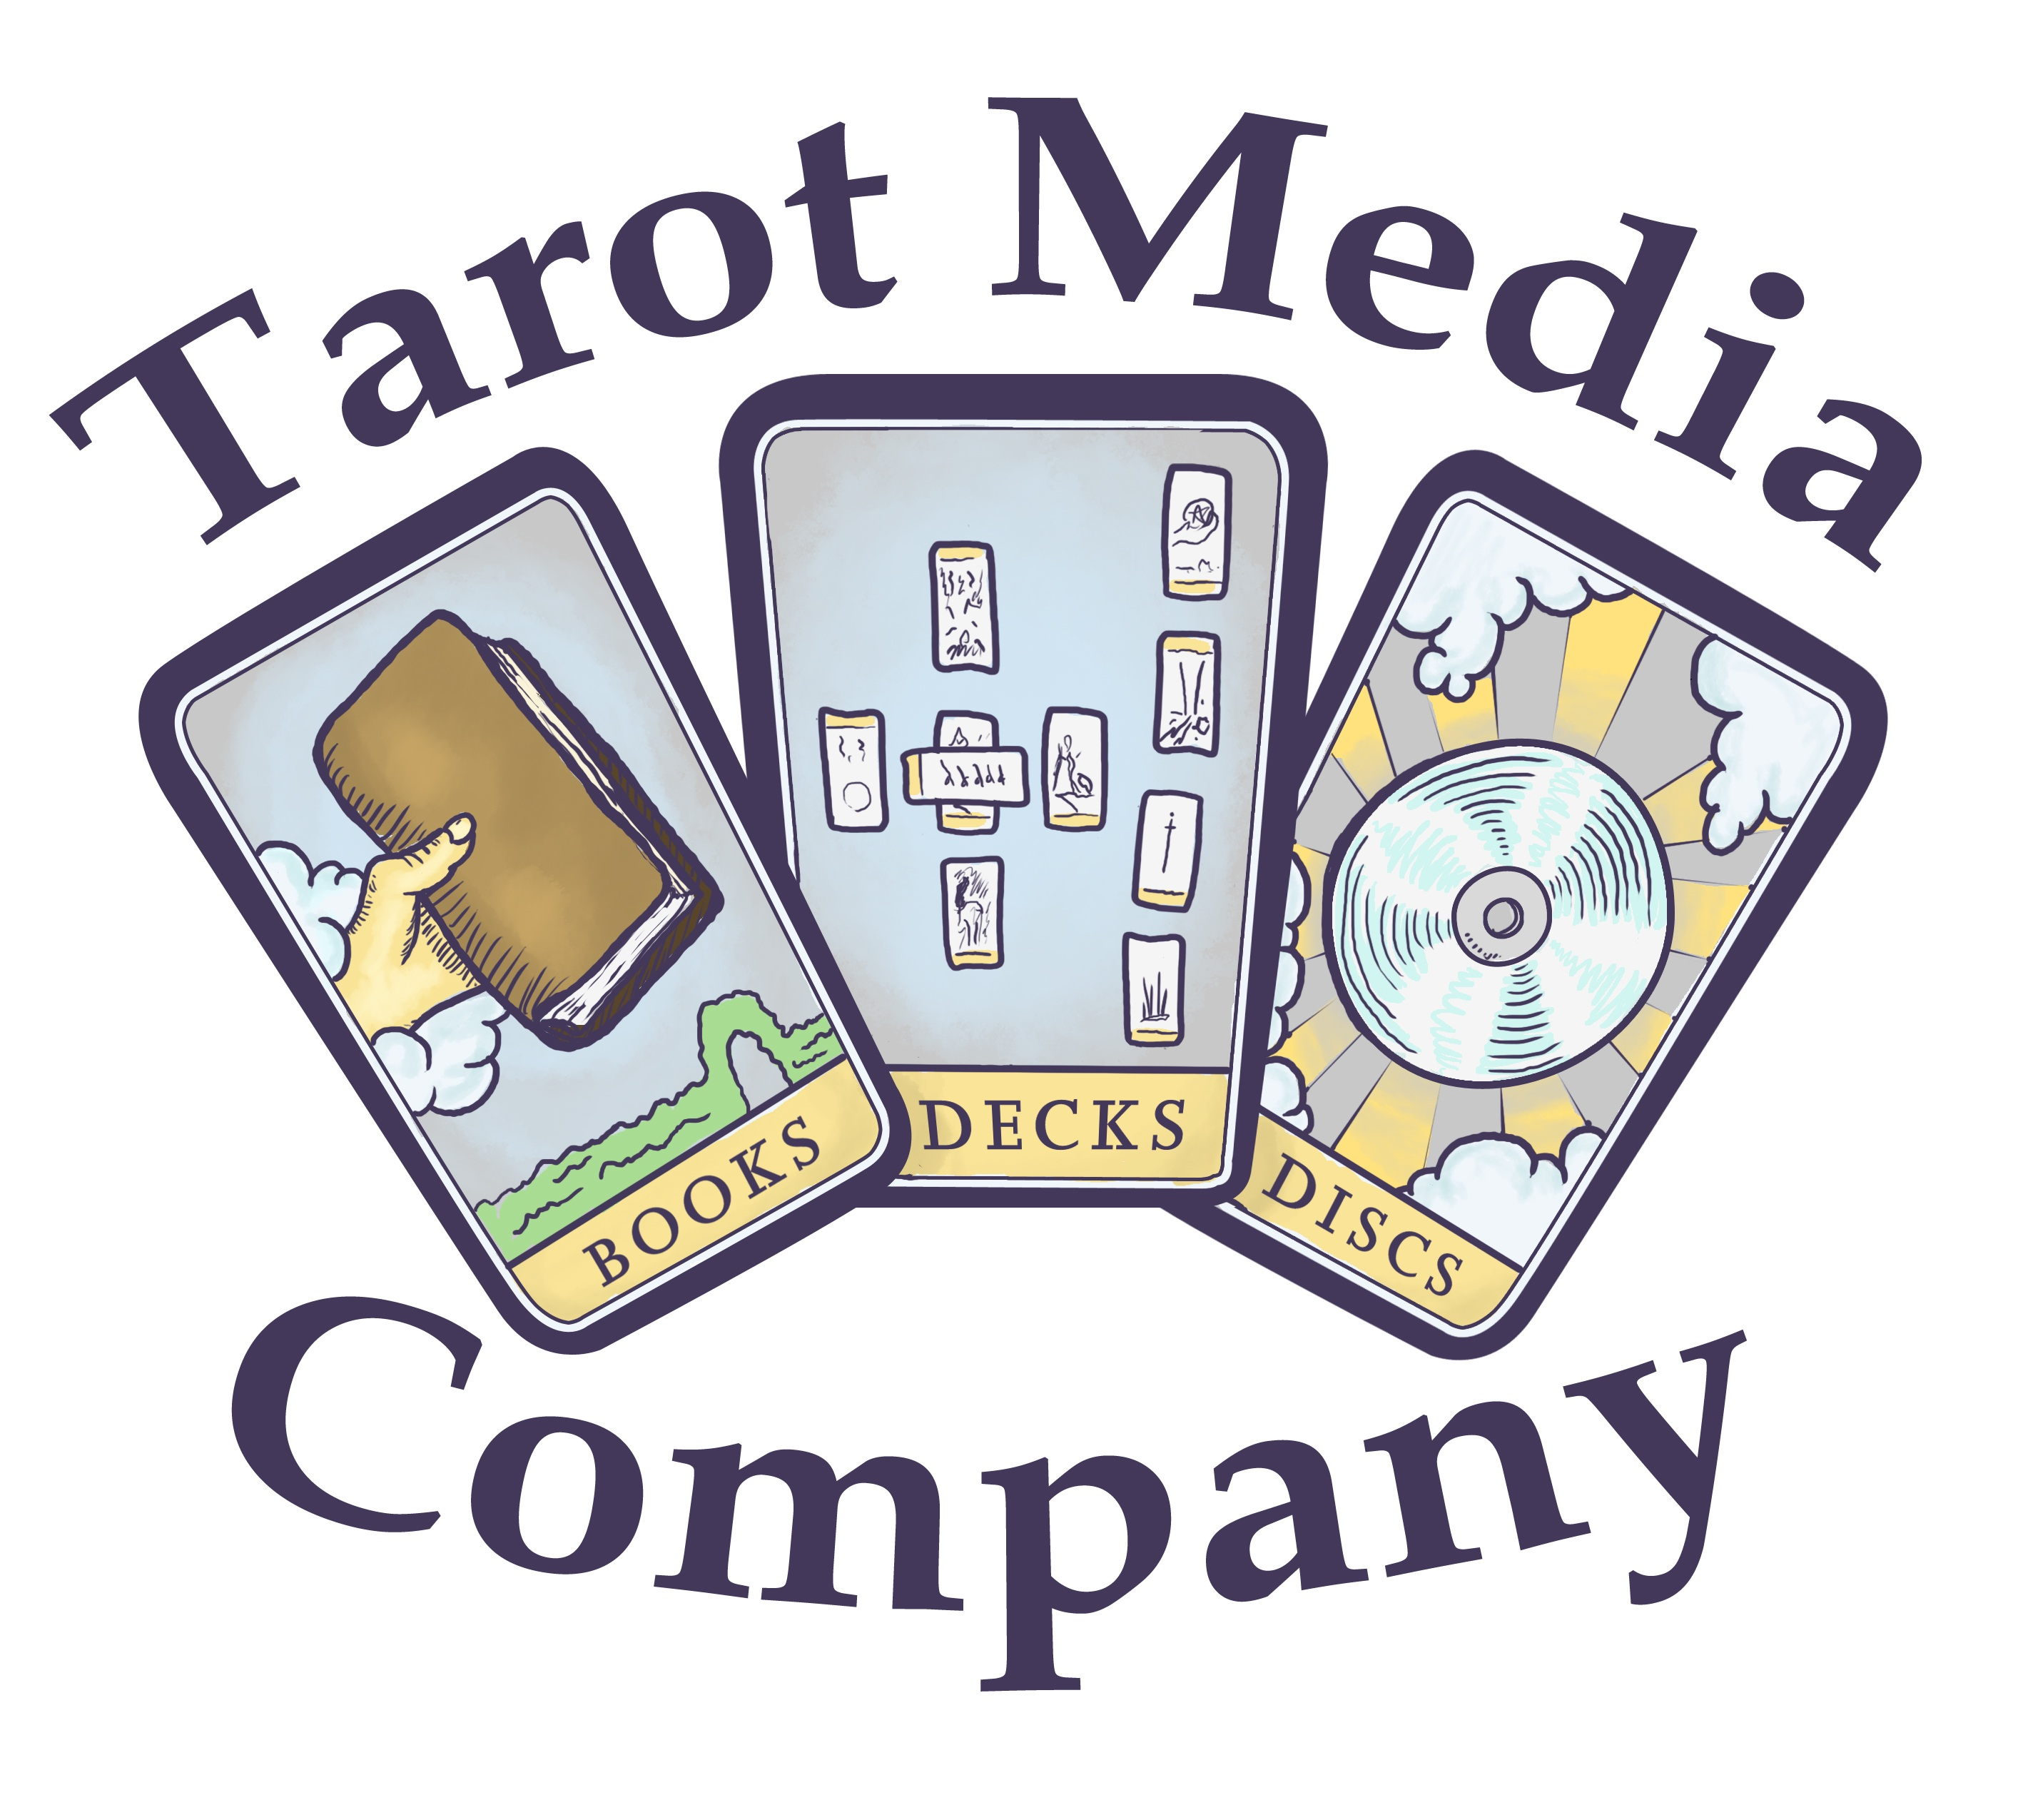 Tarot Media Company